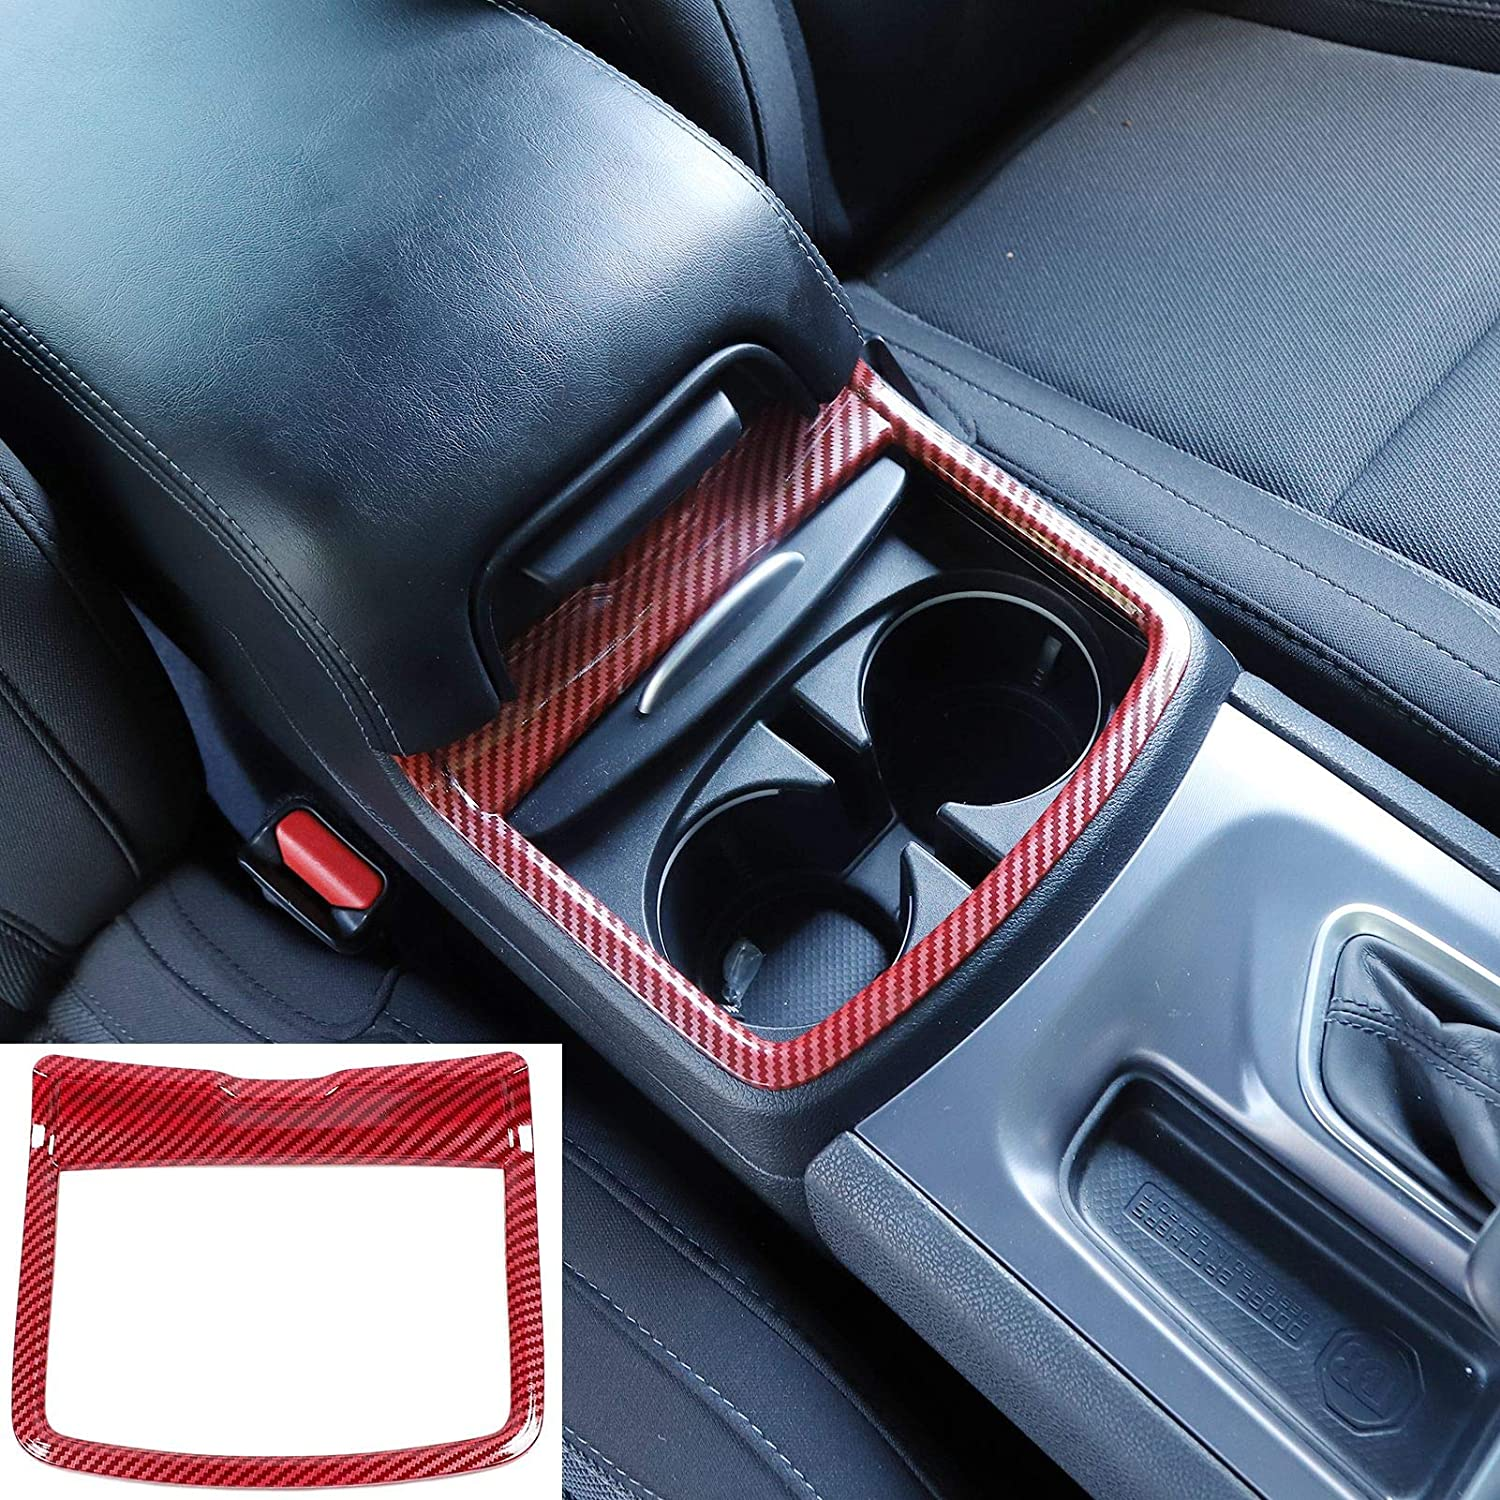 Hoolcar for Car NEW Interior Accessories Central Cup Console Holder 40% OFF Cheap Sale